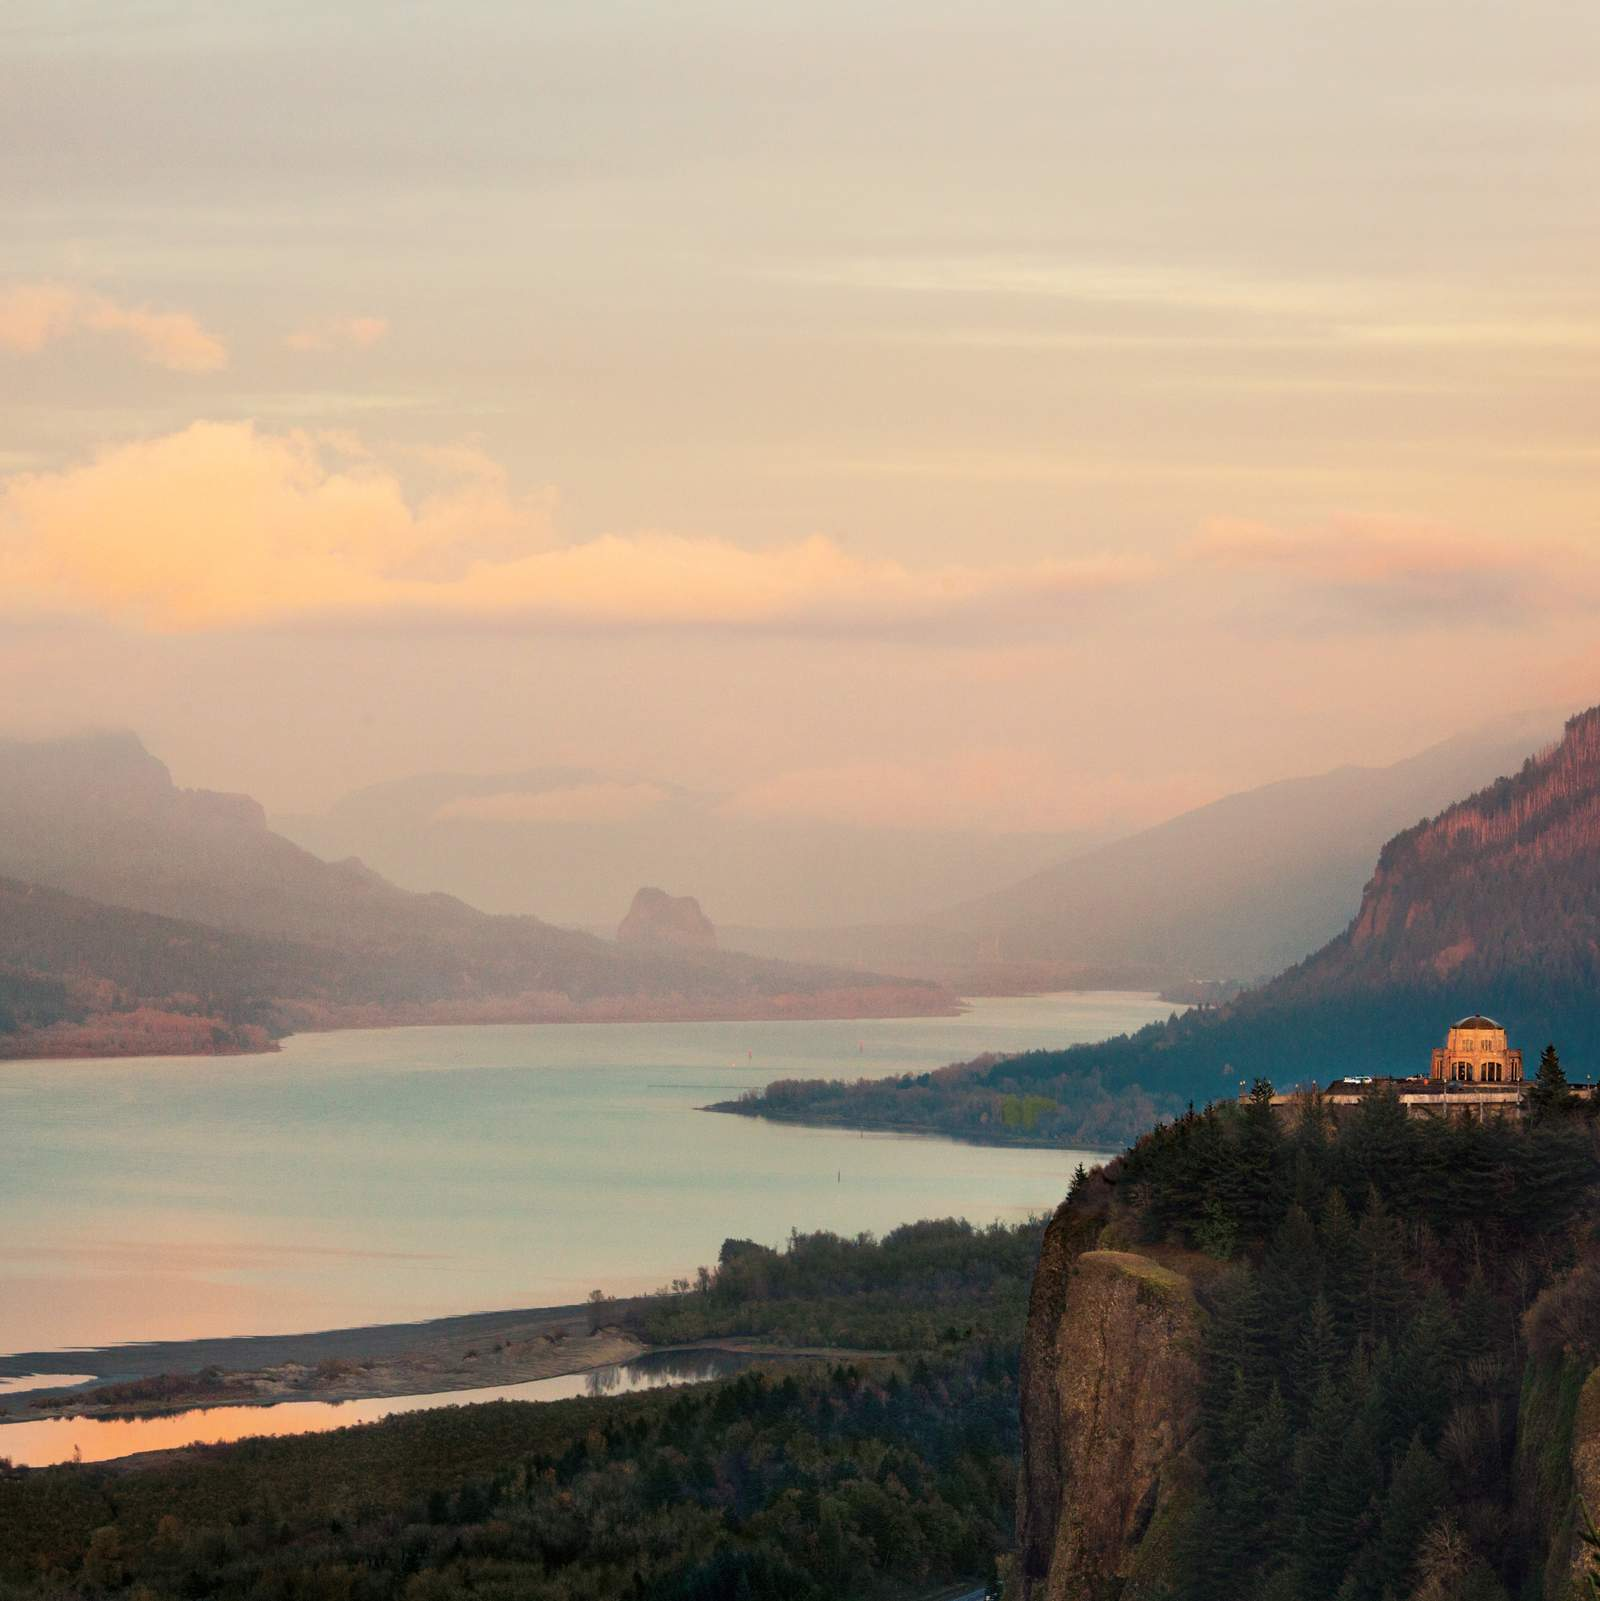 Columbia River Gorge National Scenic Area im Sonnenuntergang